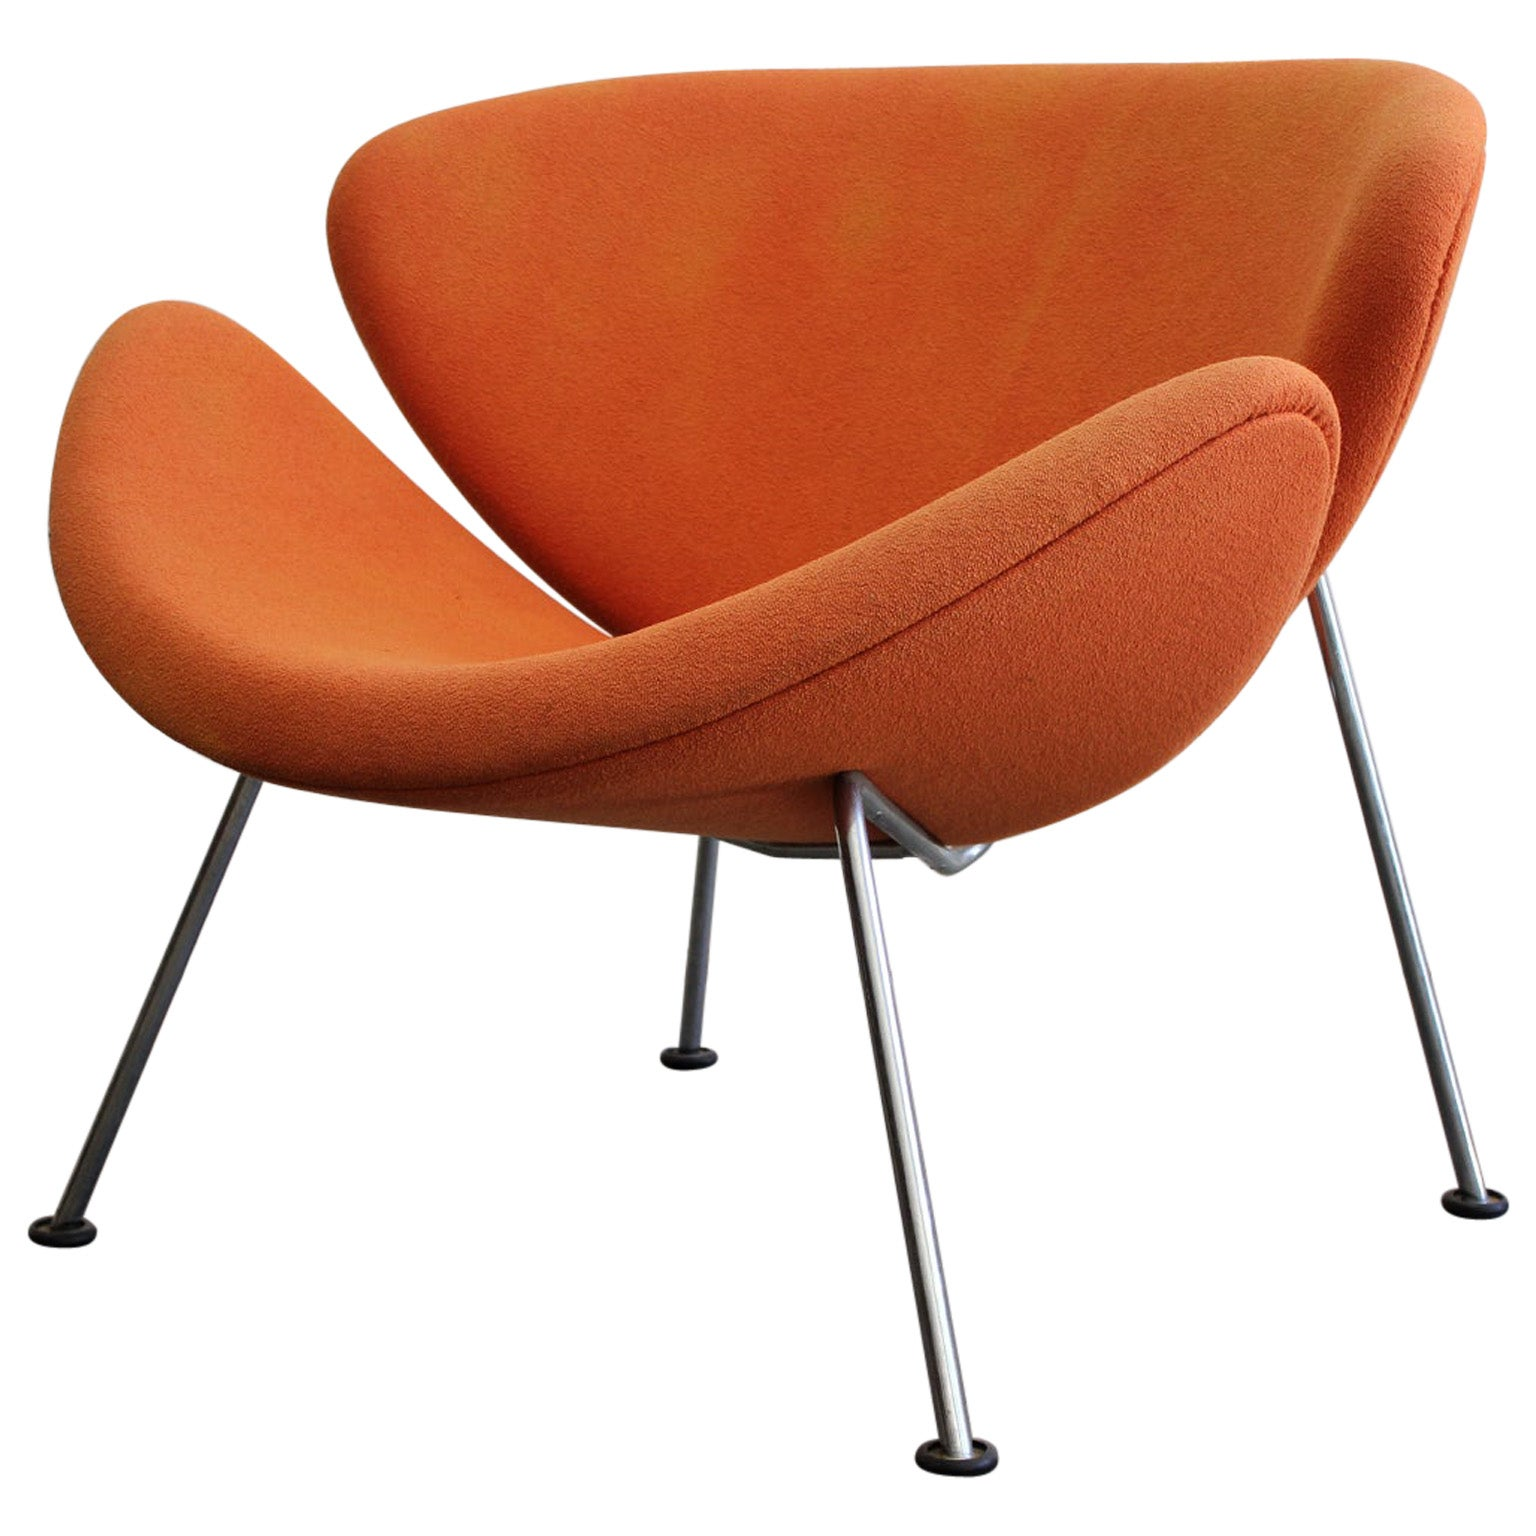 """Early Pierre Paulin First Edition """"Orange Slice"""" Chair for Artifort"""